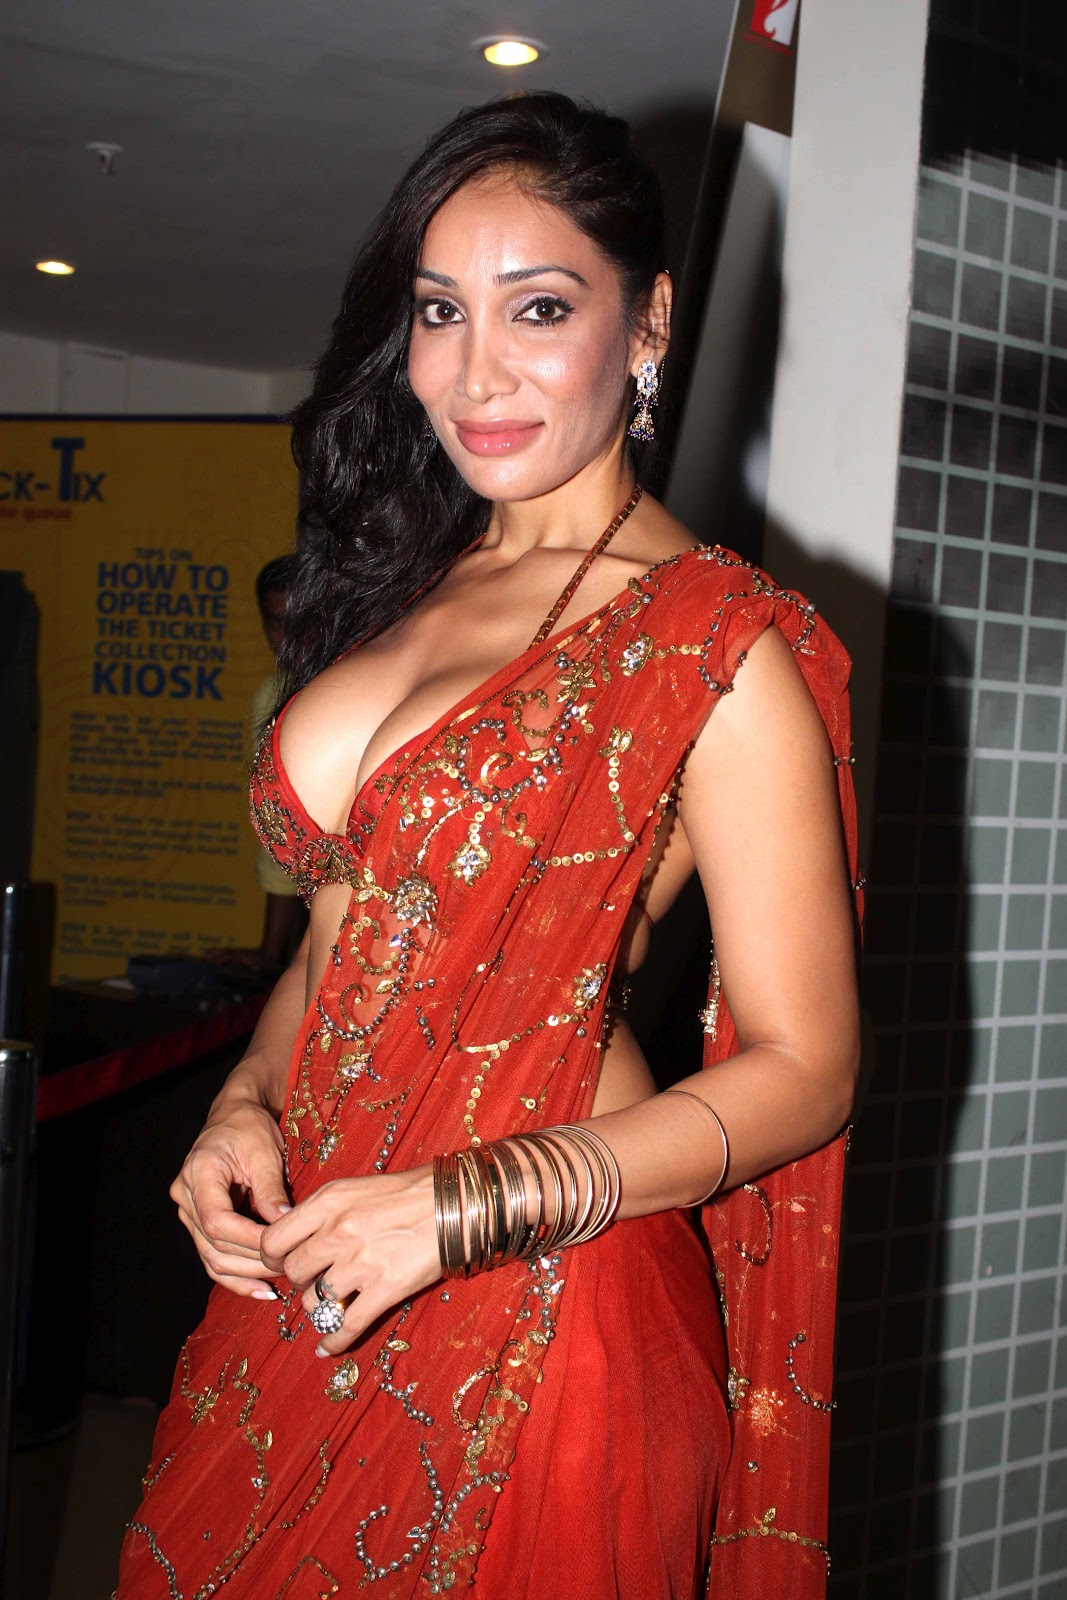 Kamar Sofia Sofia Hayat Hot In Red Blouse And Saree Hotweb